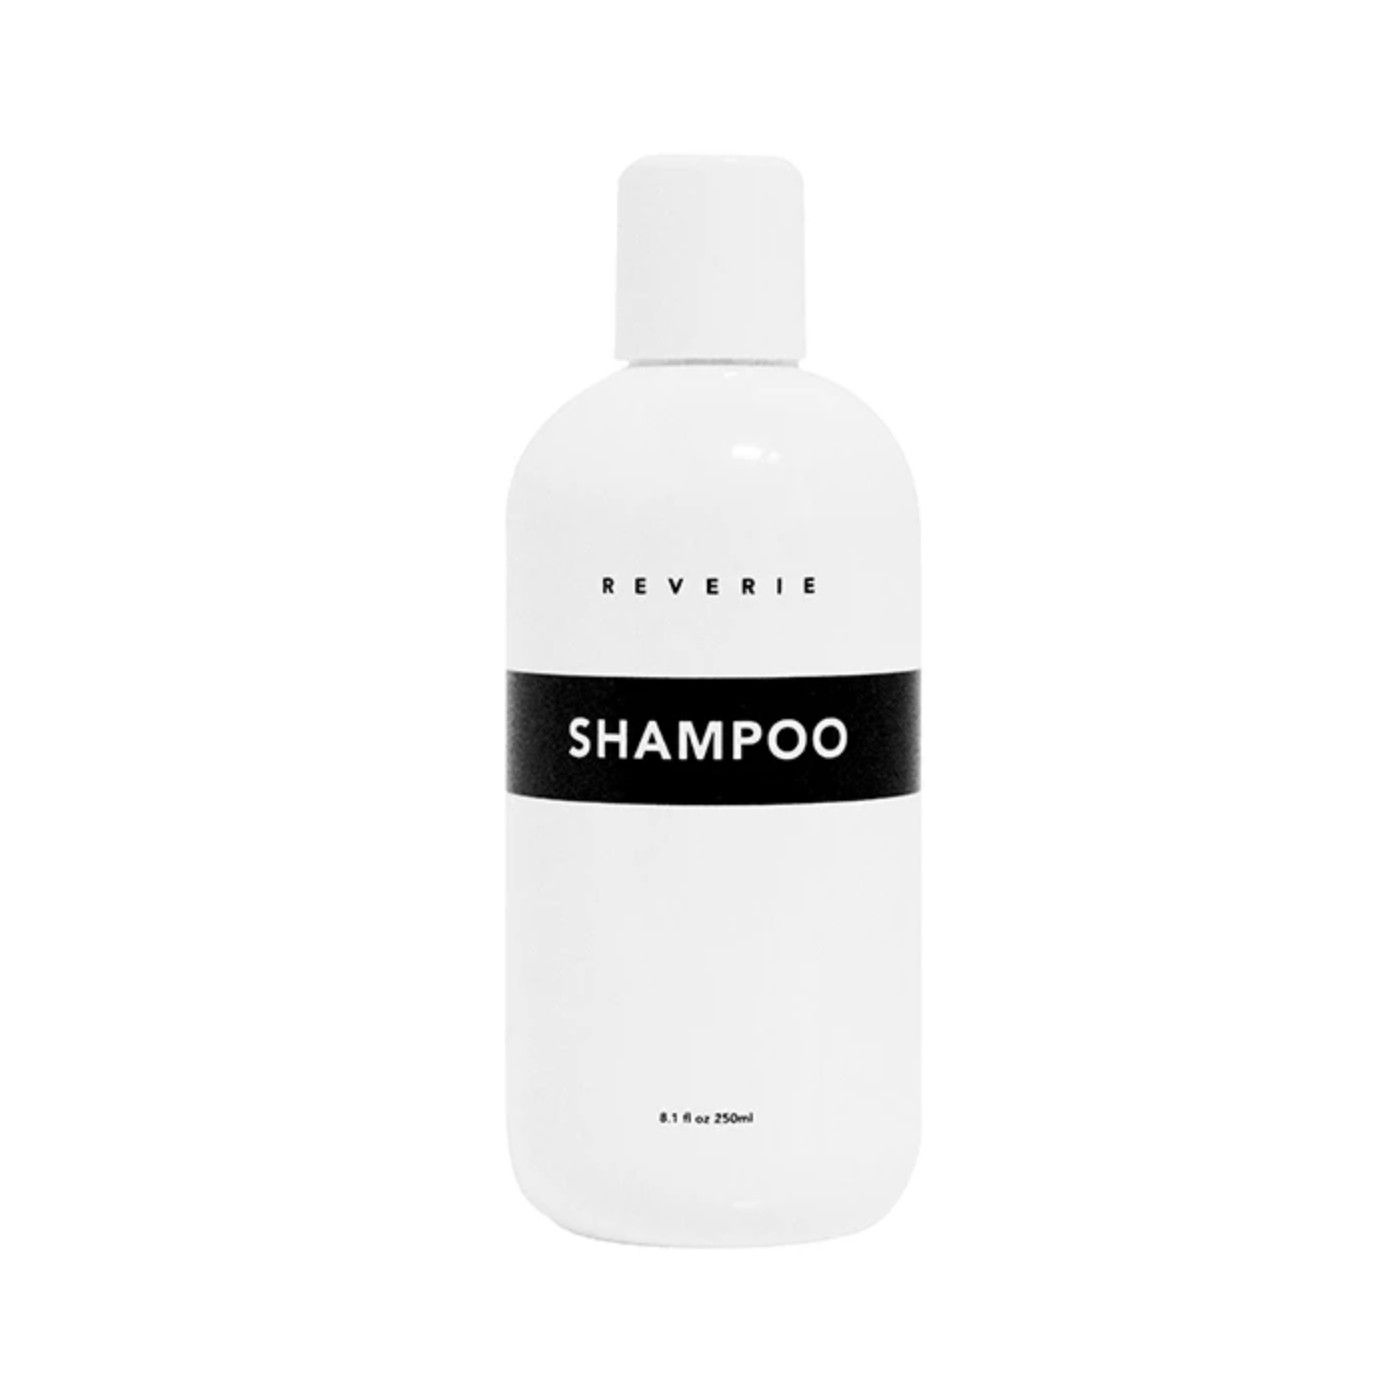 White bottle of shampoo with a black label on a white background.